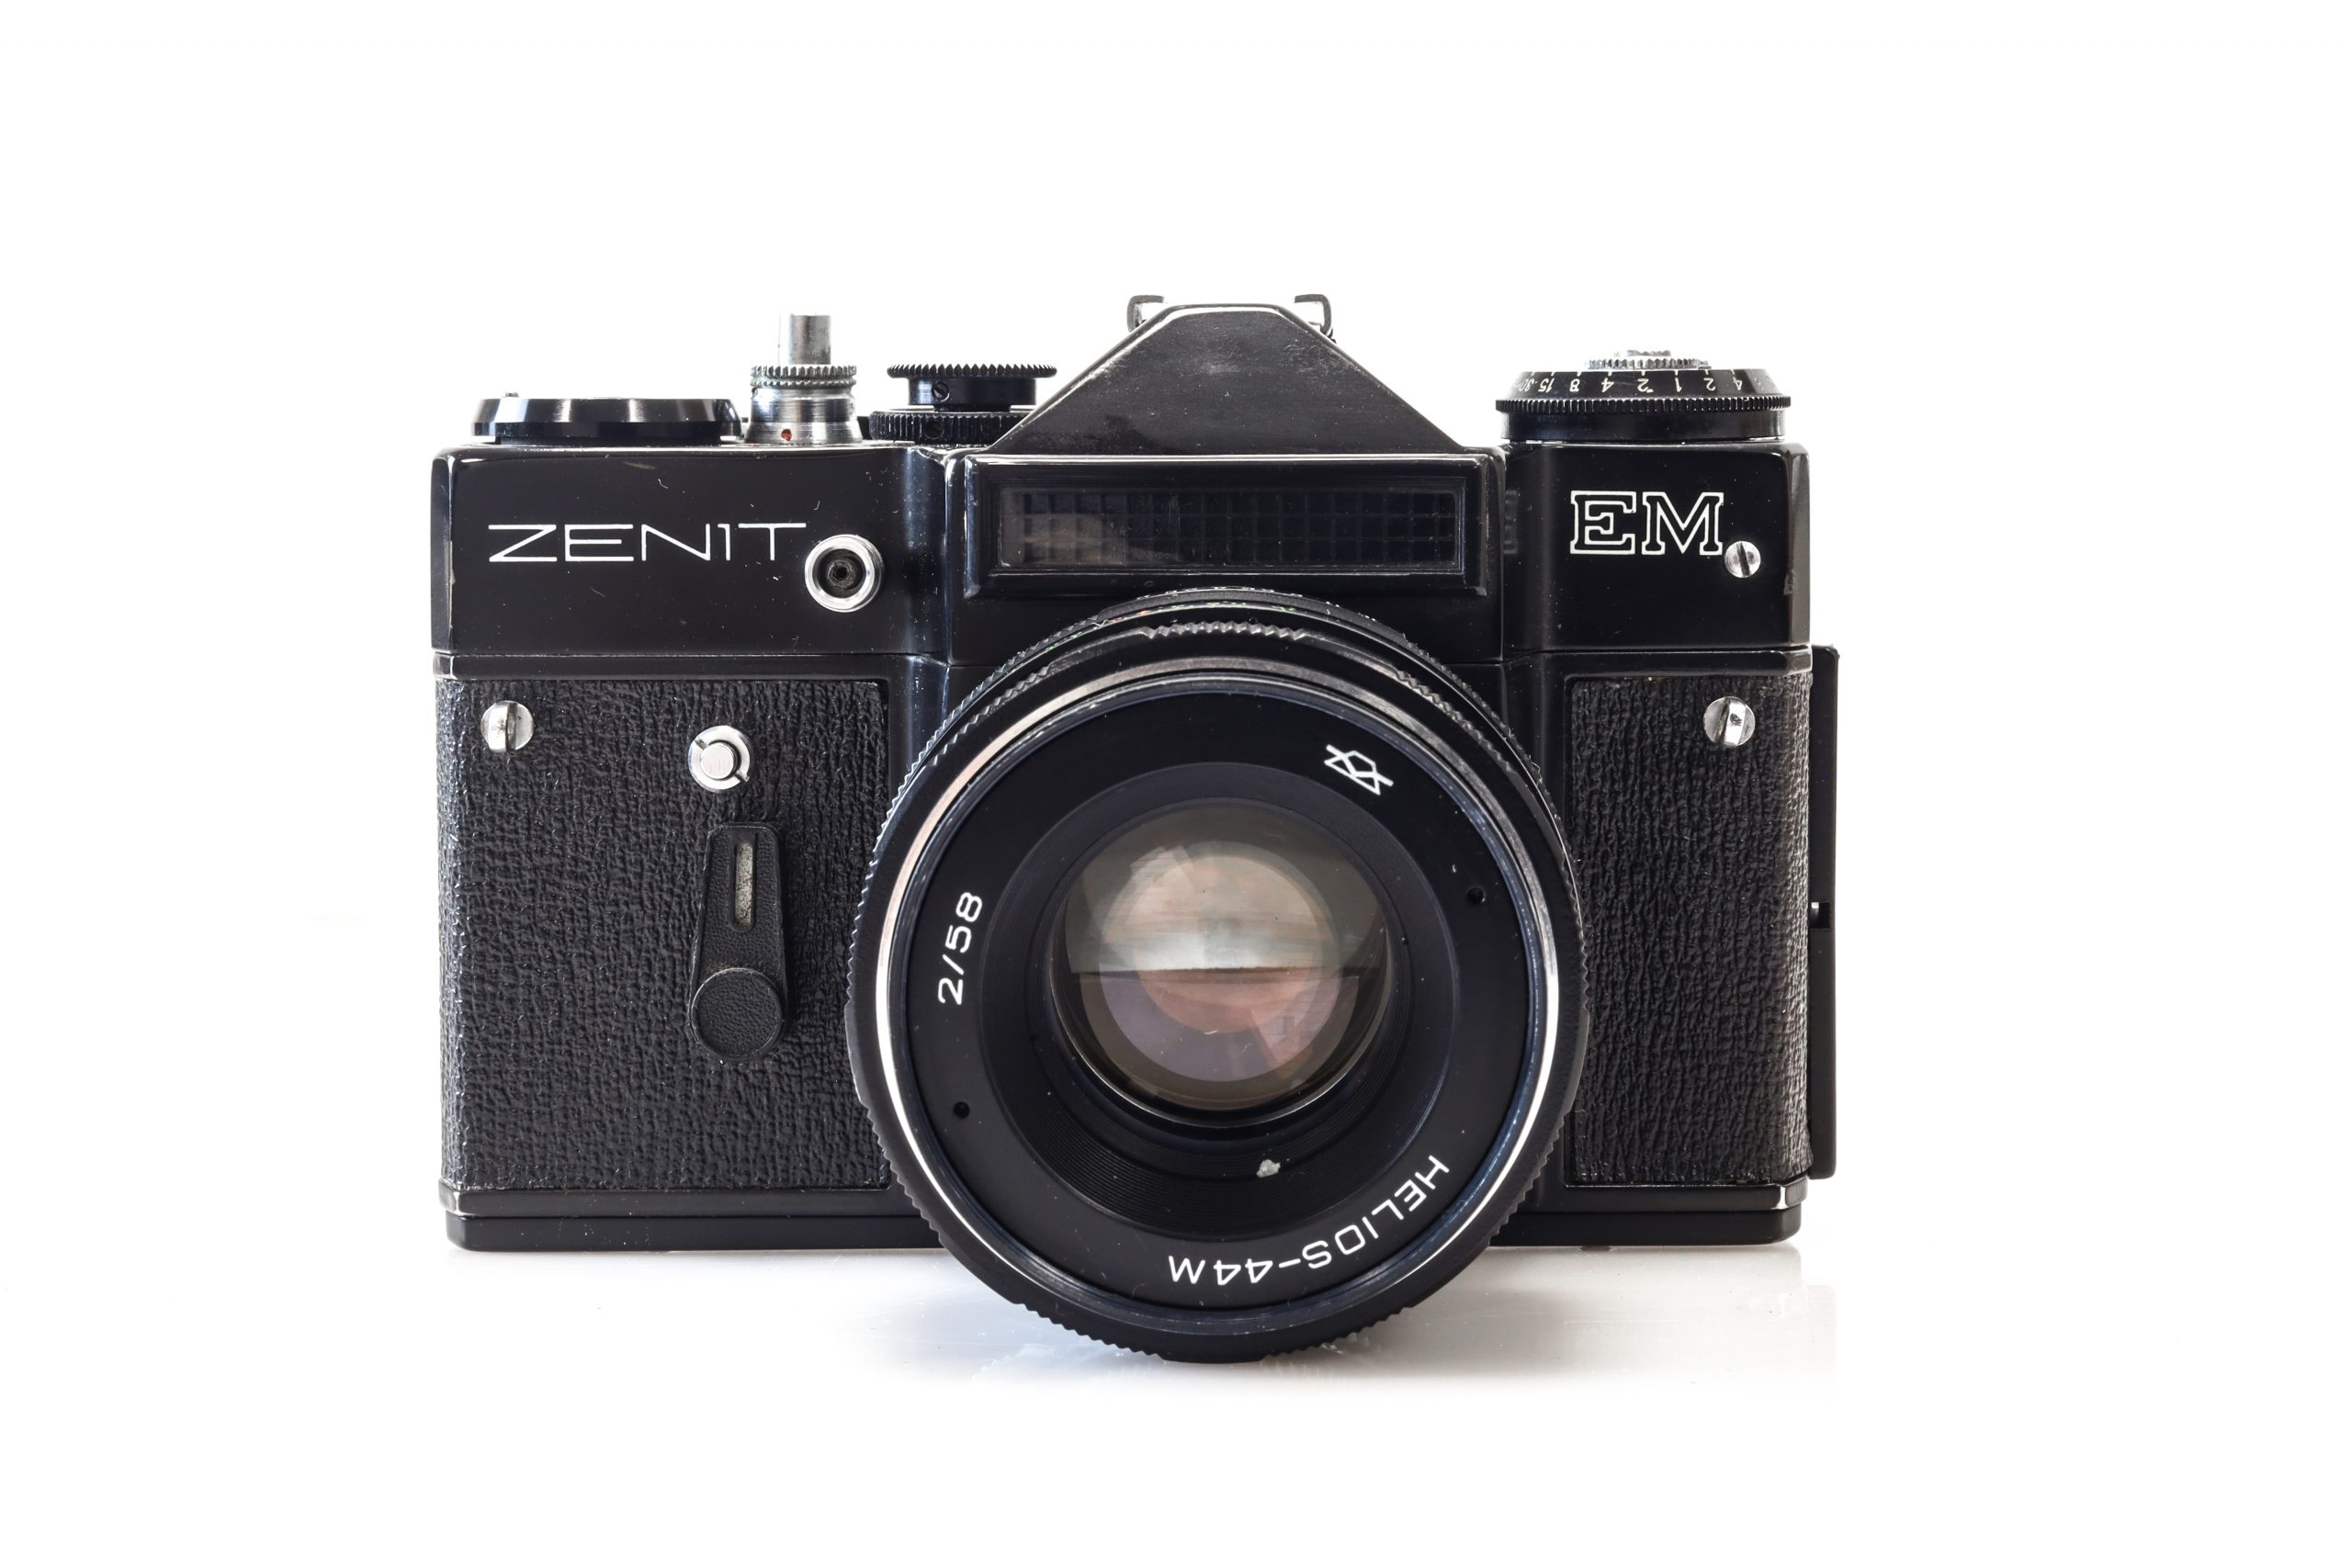 Beautiful Zenit EM 35mm Soviet Film Camera with Helios 44m Lens